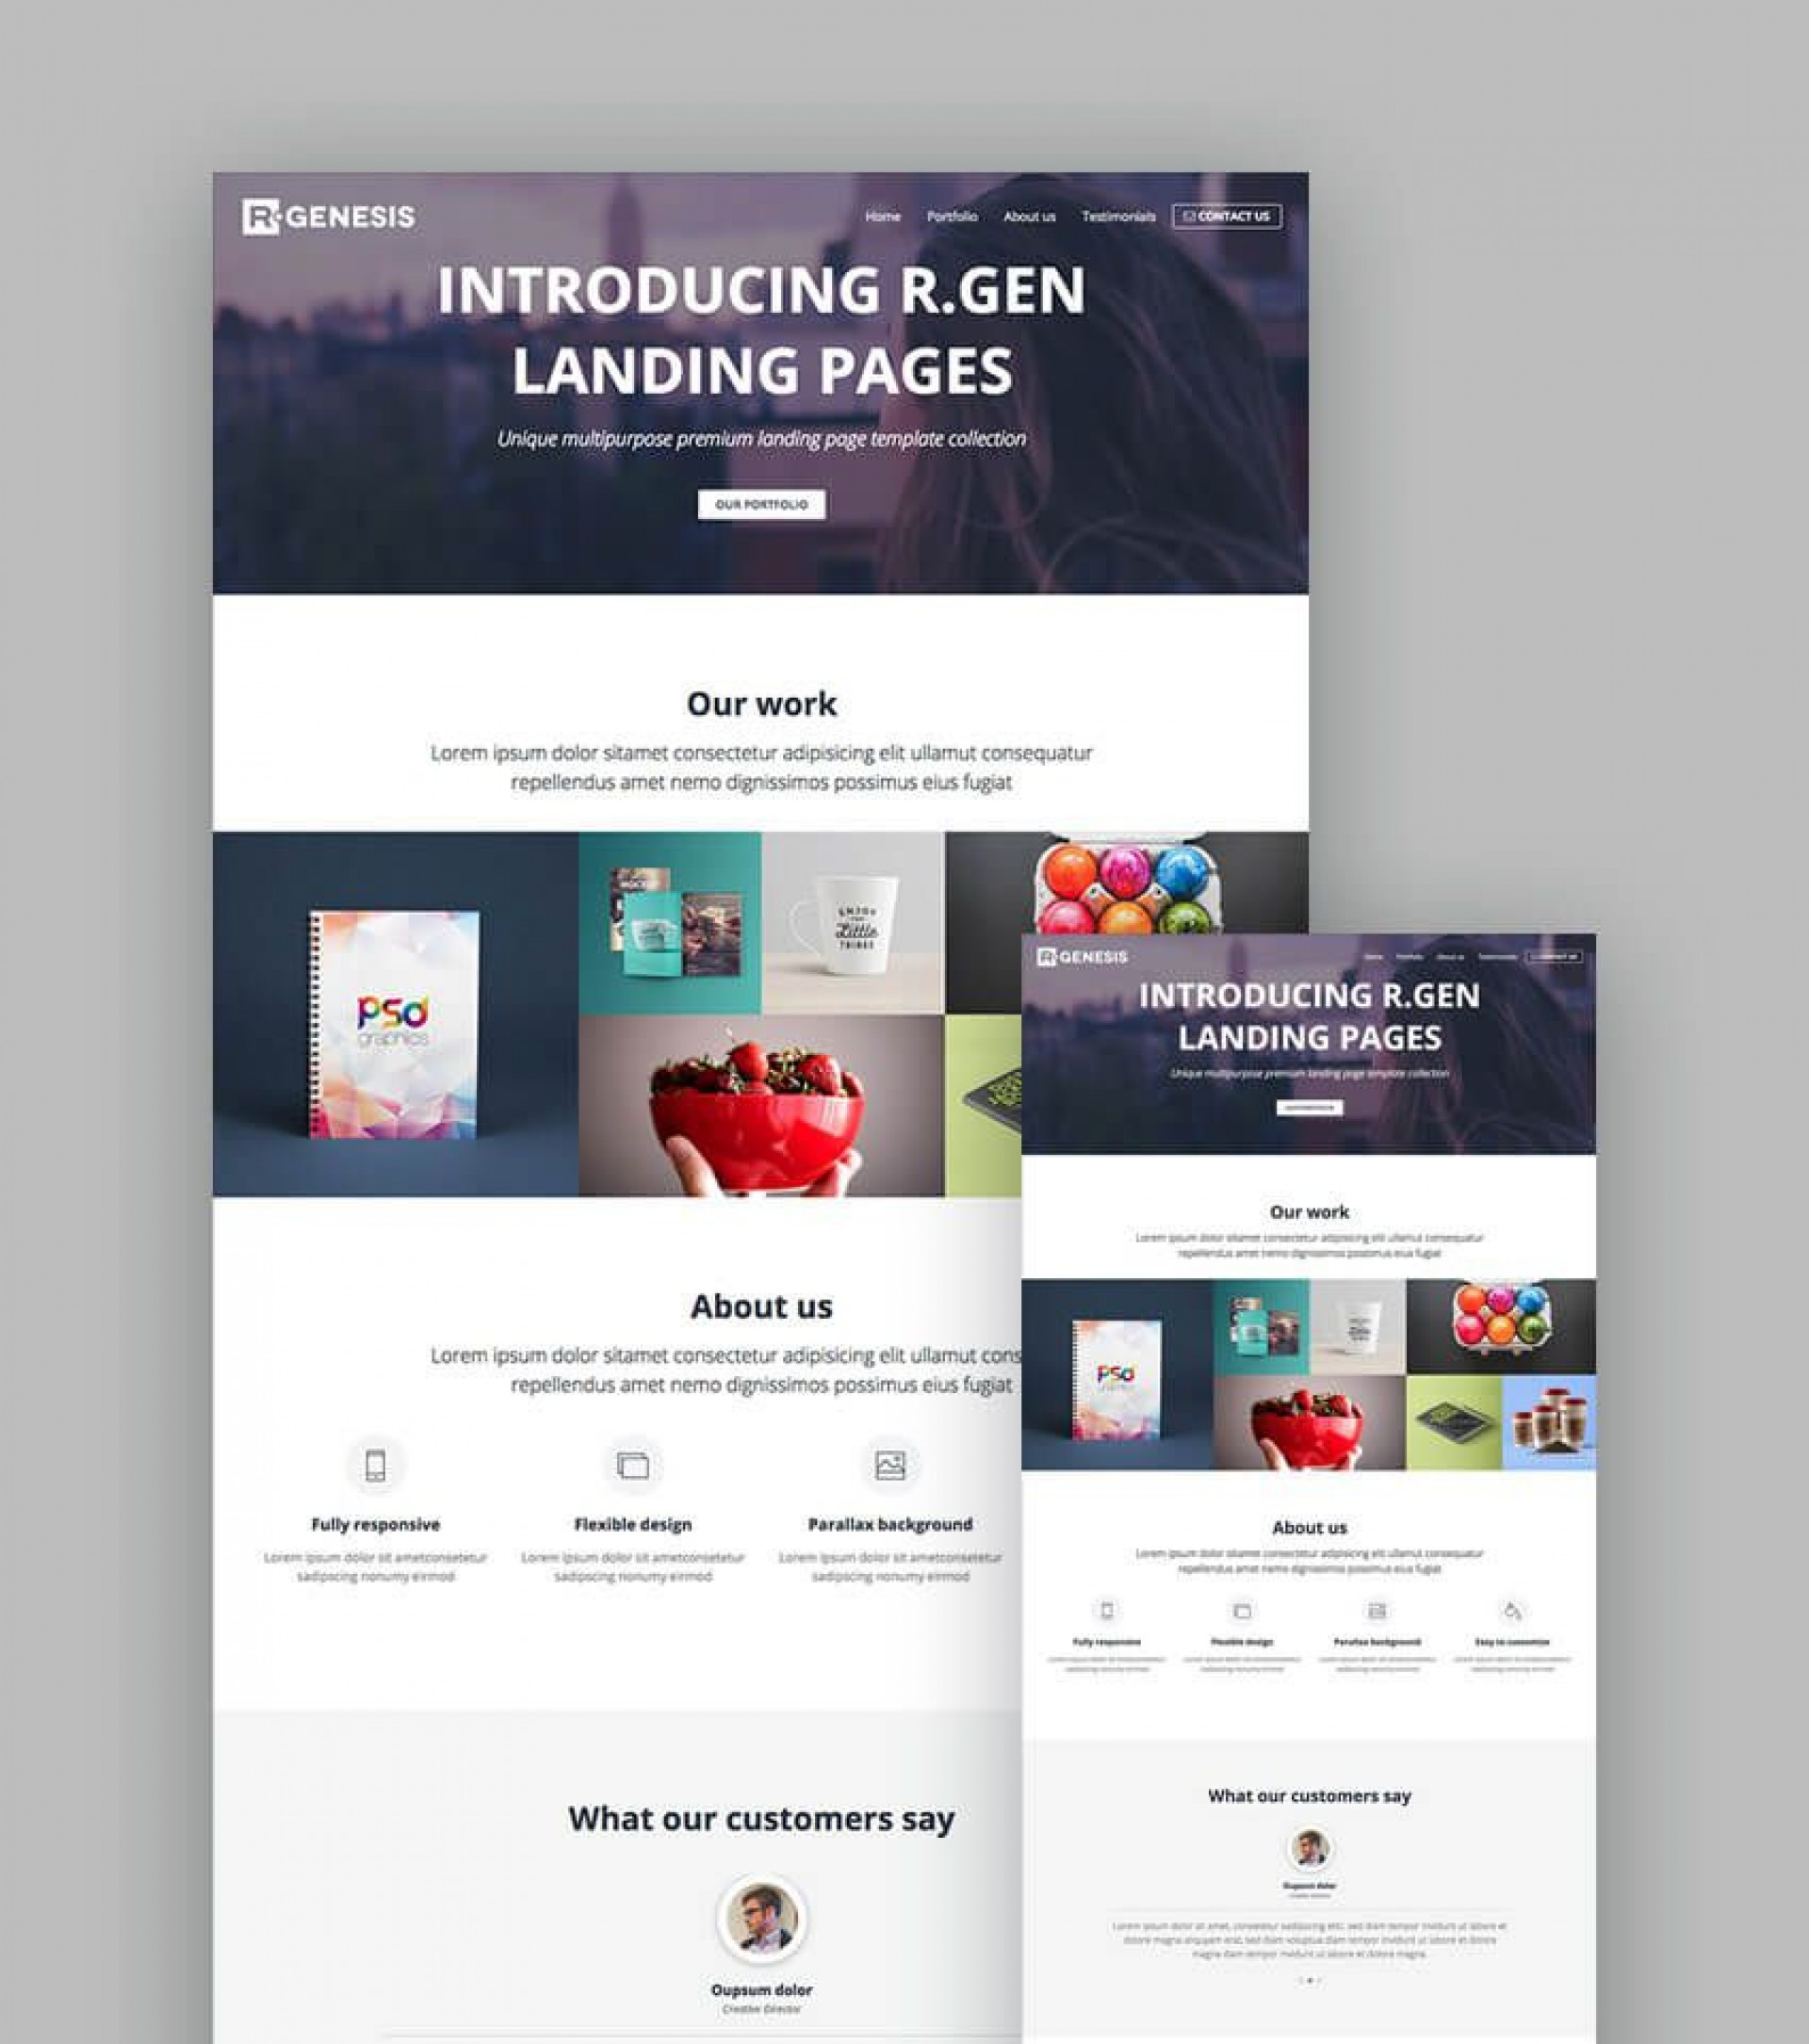 007 Wonderful Responsive Landing Page Template High Definition  Templates Marketo Free Pardot Html5 Download1920